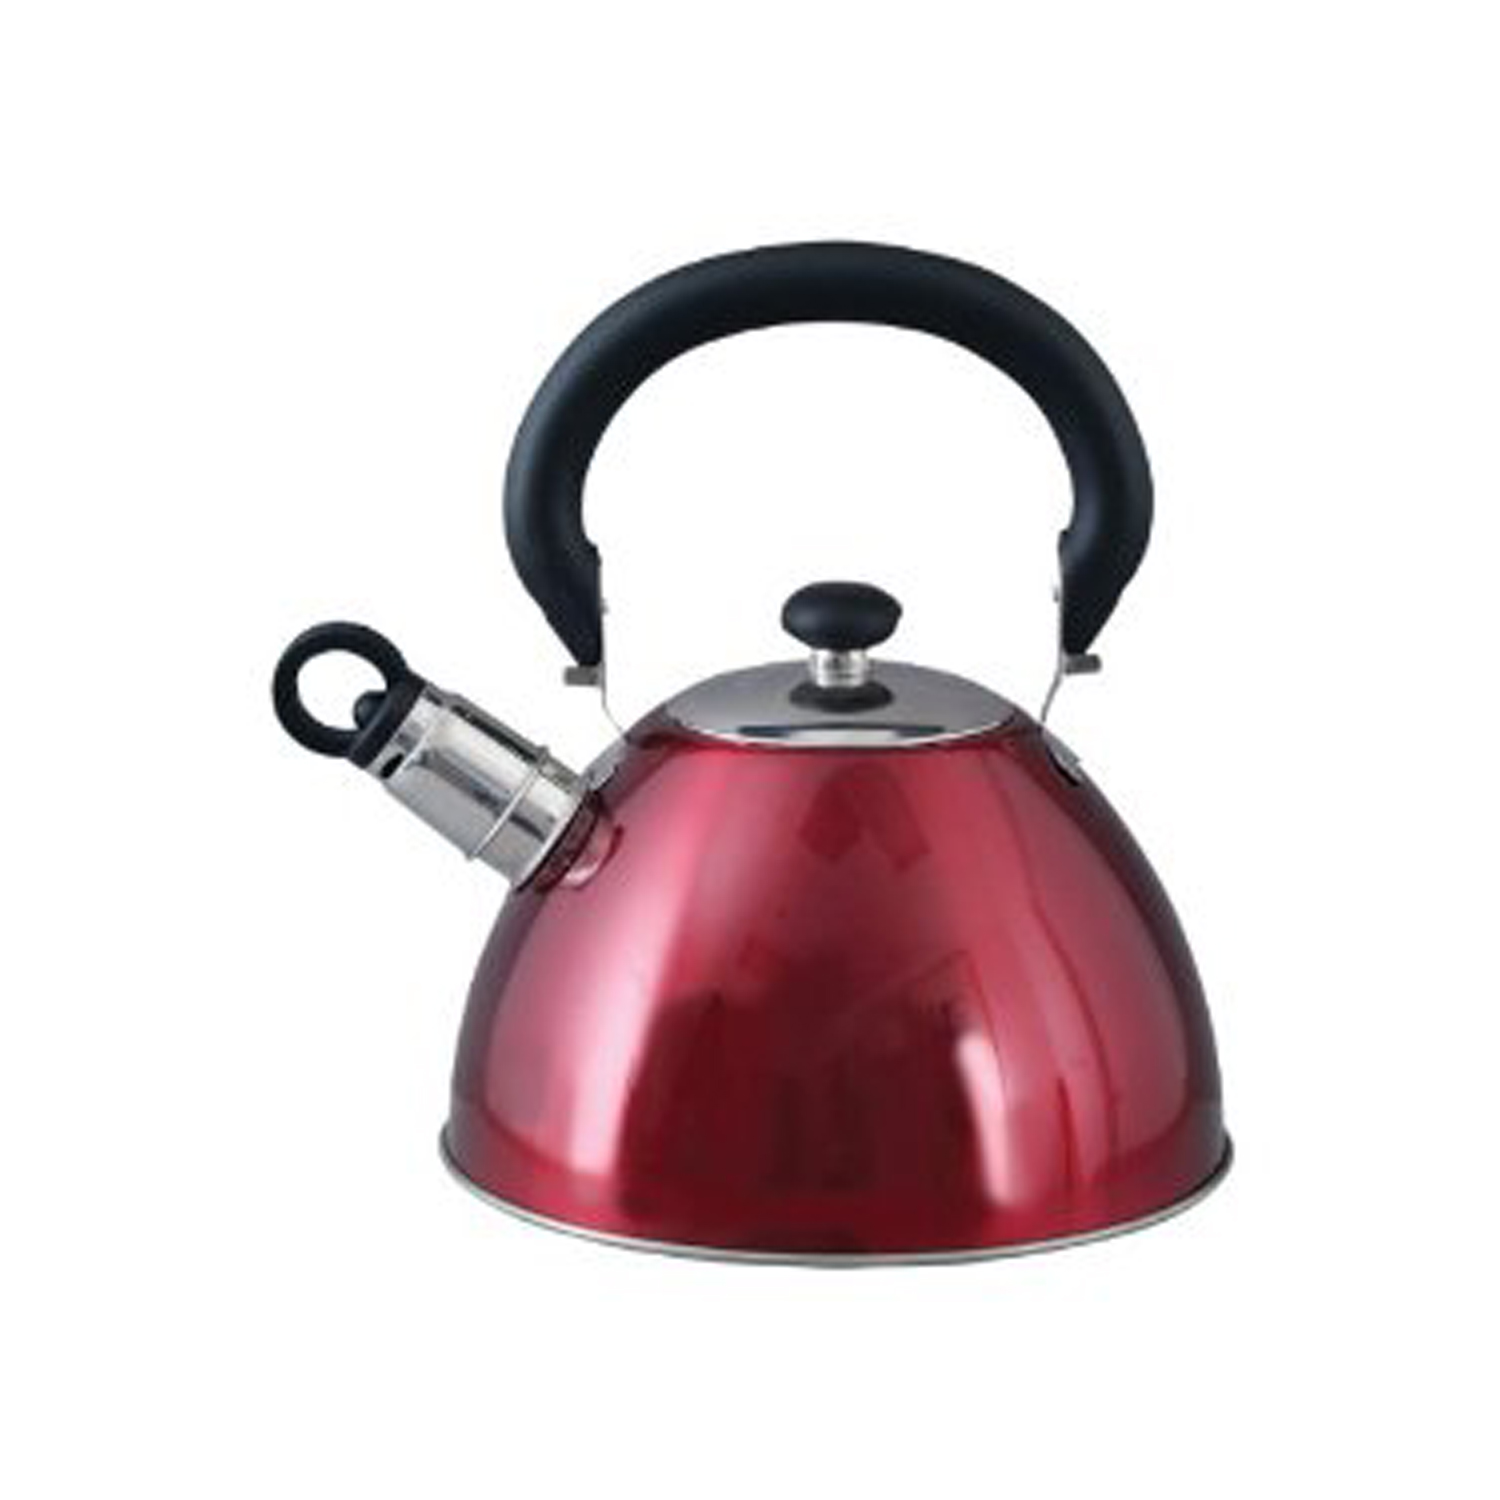 Gibson Morbern 1.8-QuarTea Kettle in Red